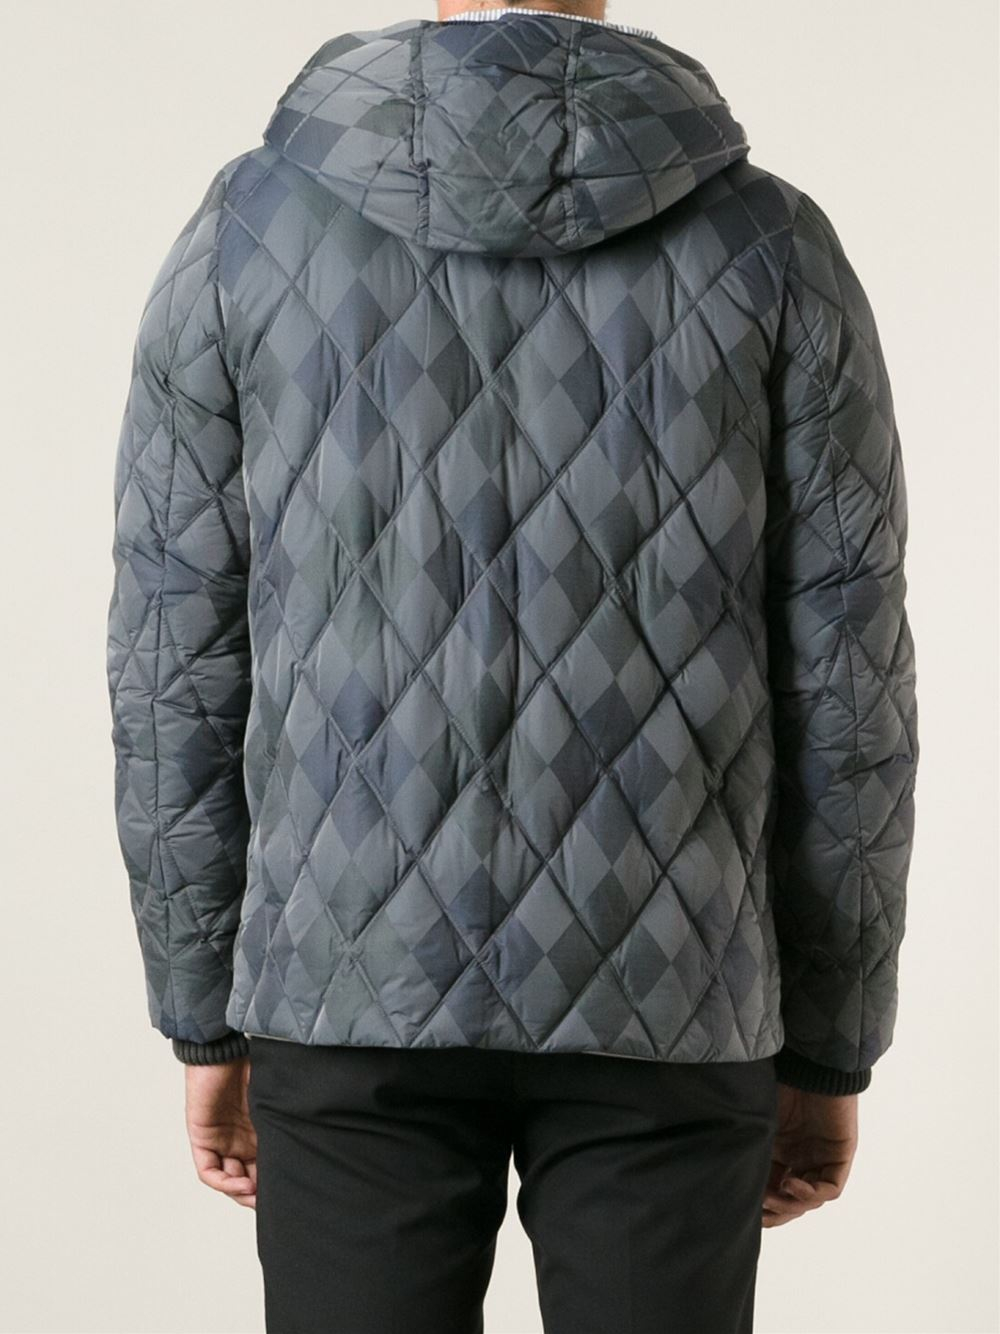 Moncler Gamme Bleu Argyle Print Padded Jacket in Grey (Grey) for Men